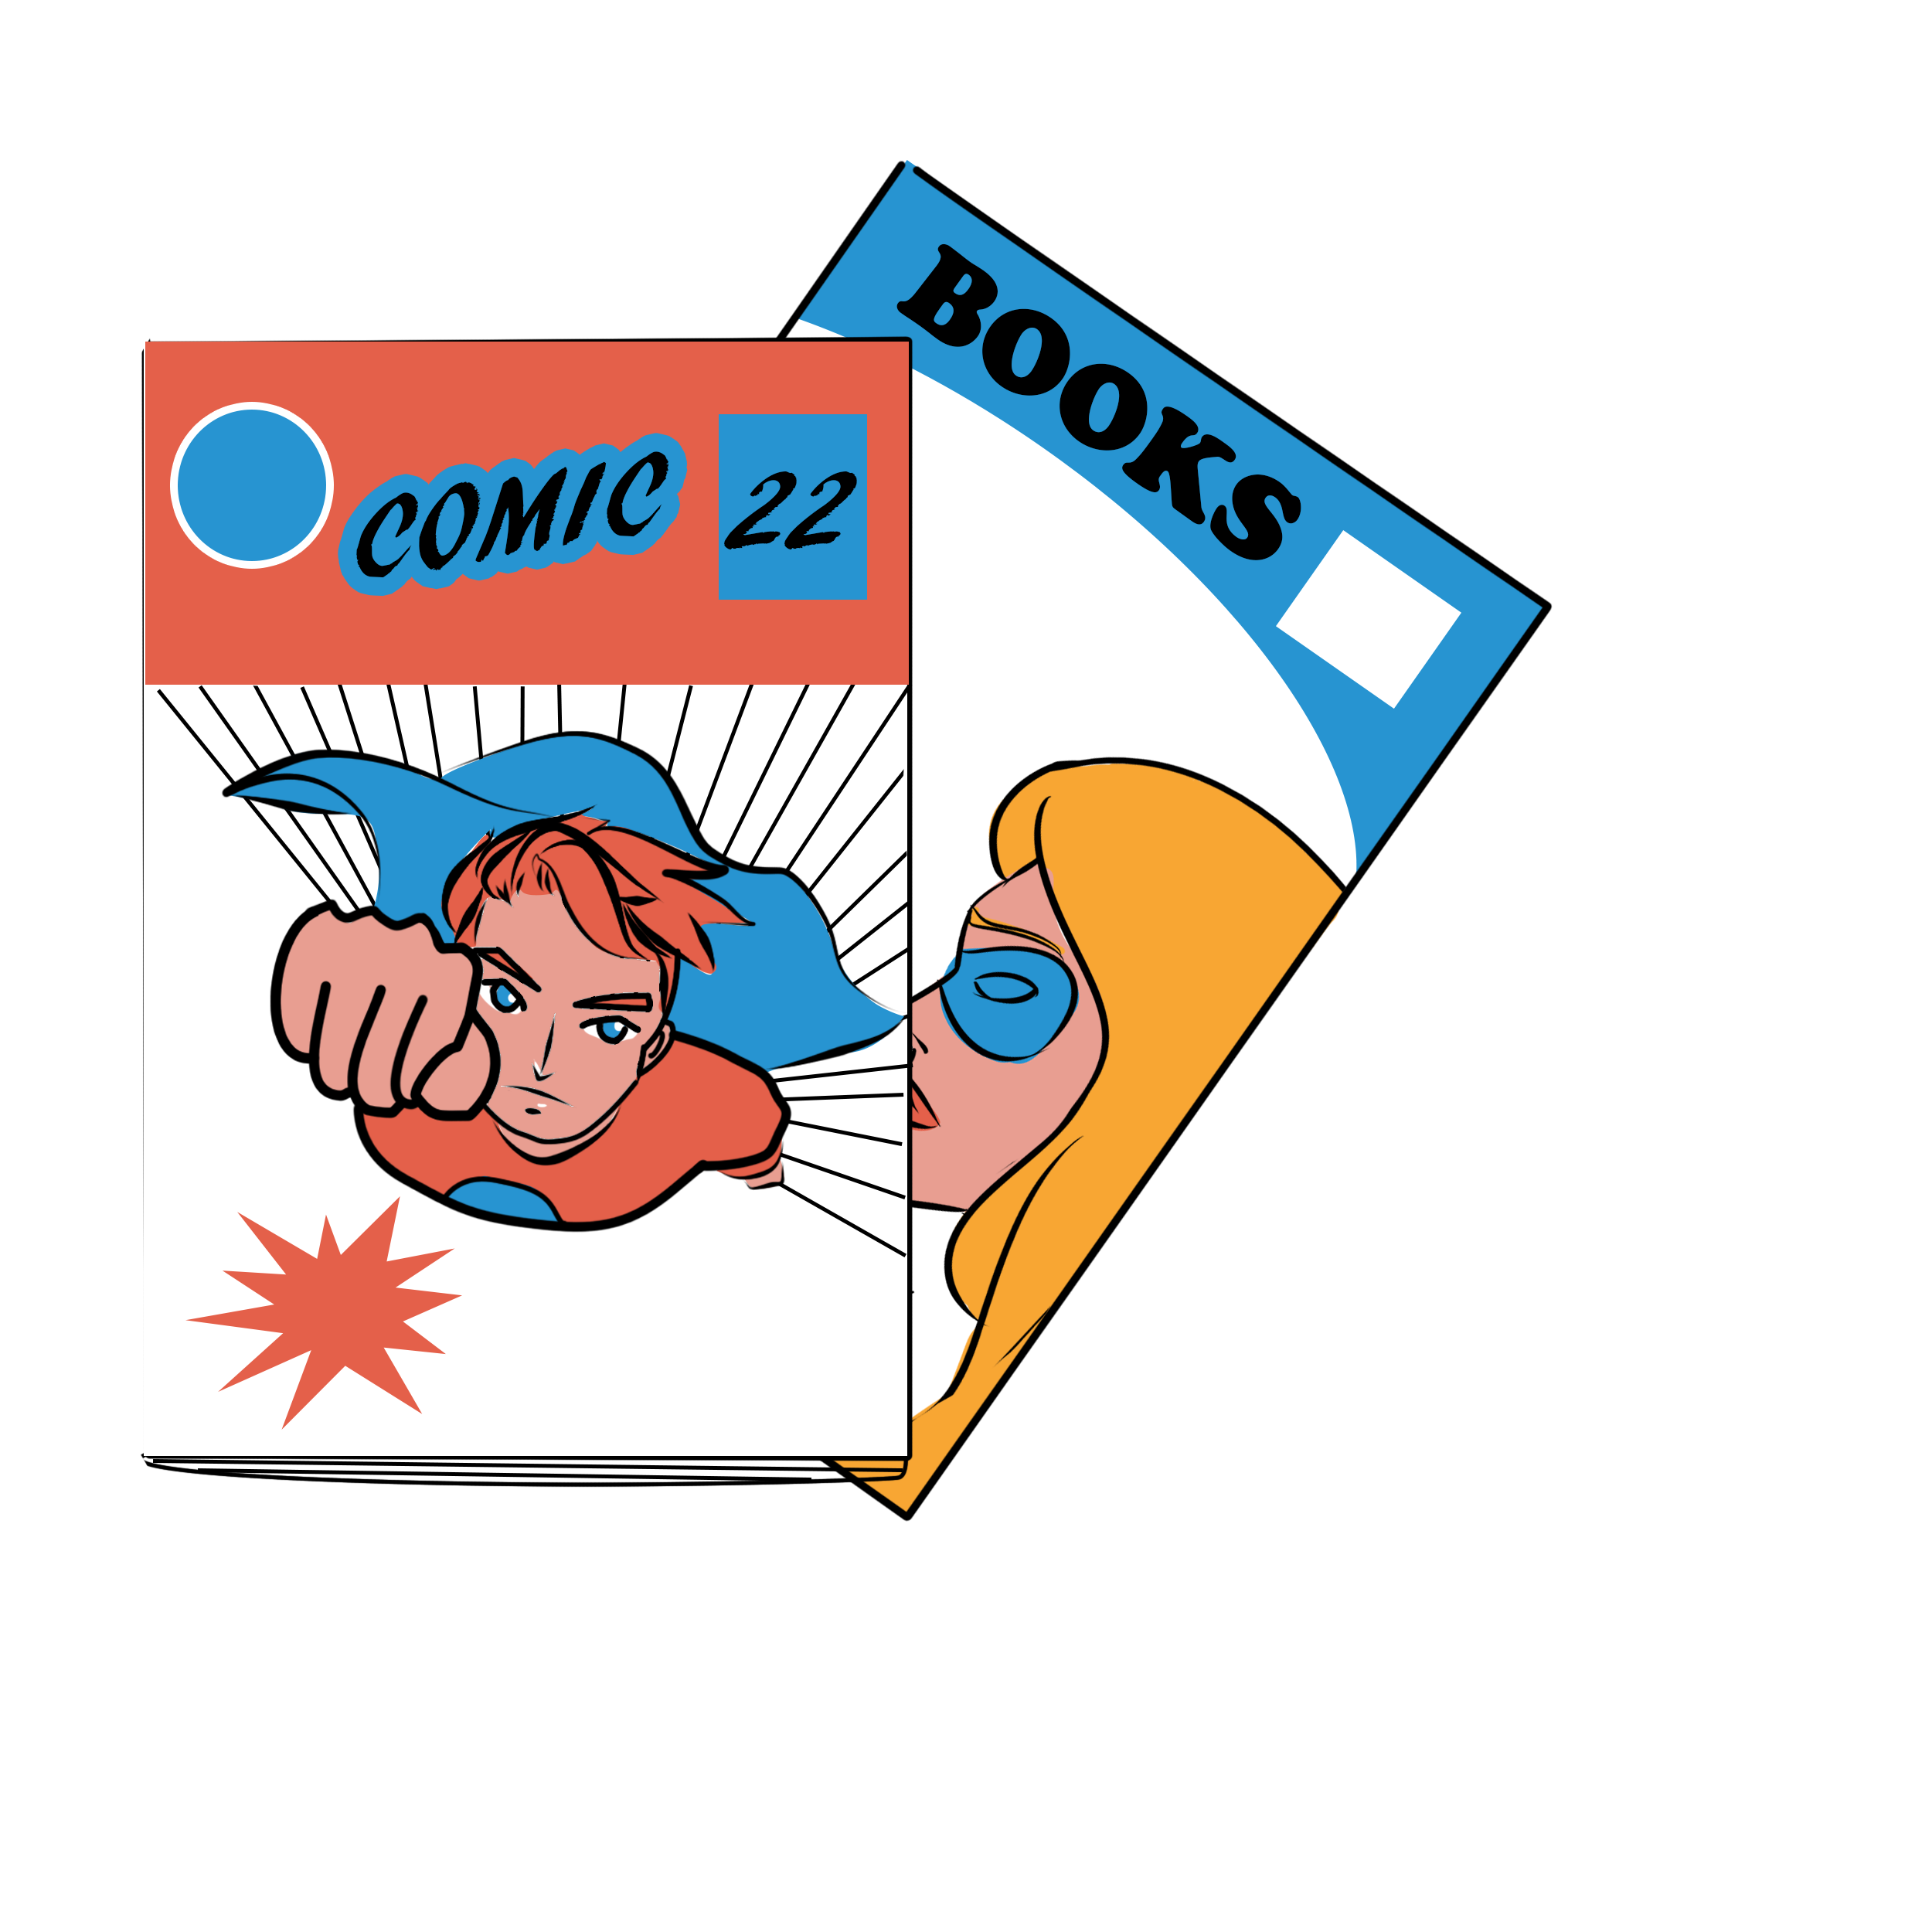 Comic book call outs clipart clipart free stock comic book clip art rtjrgy7yc - Clip Art. Net clipart free stock